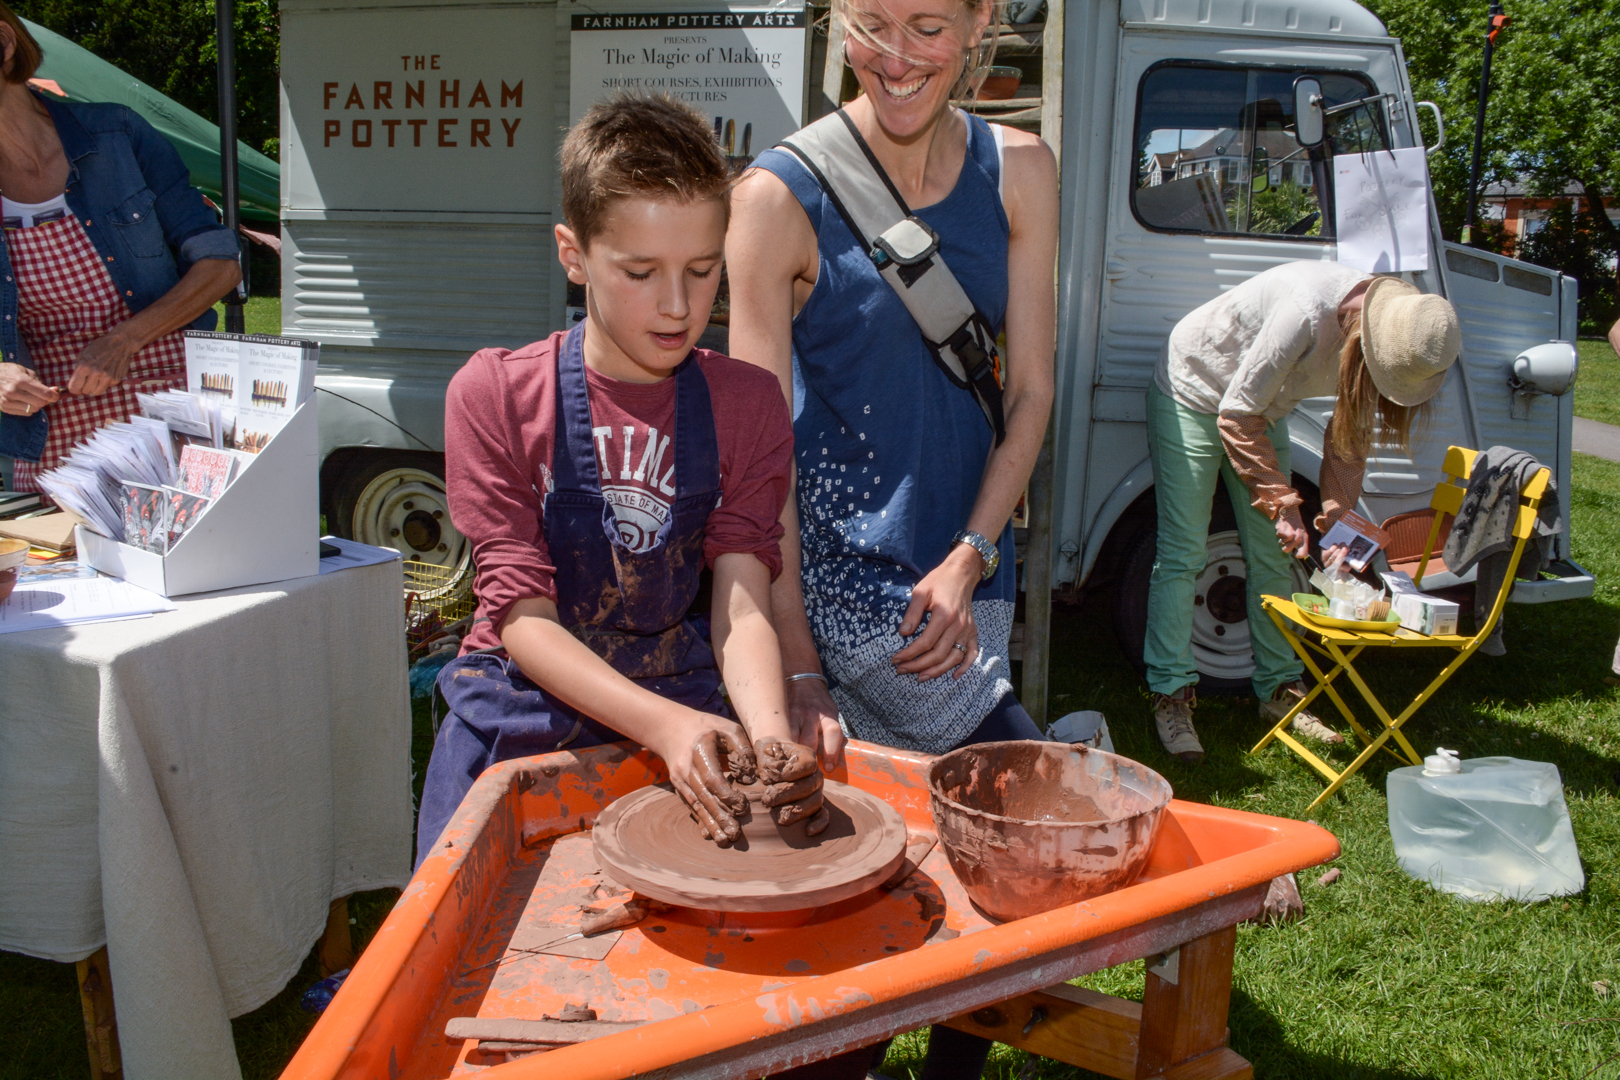 Visitors could have a go on the pottery wheel with Farnham Pottery.